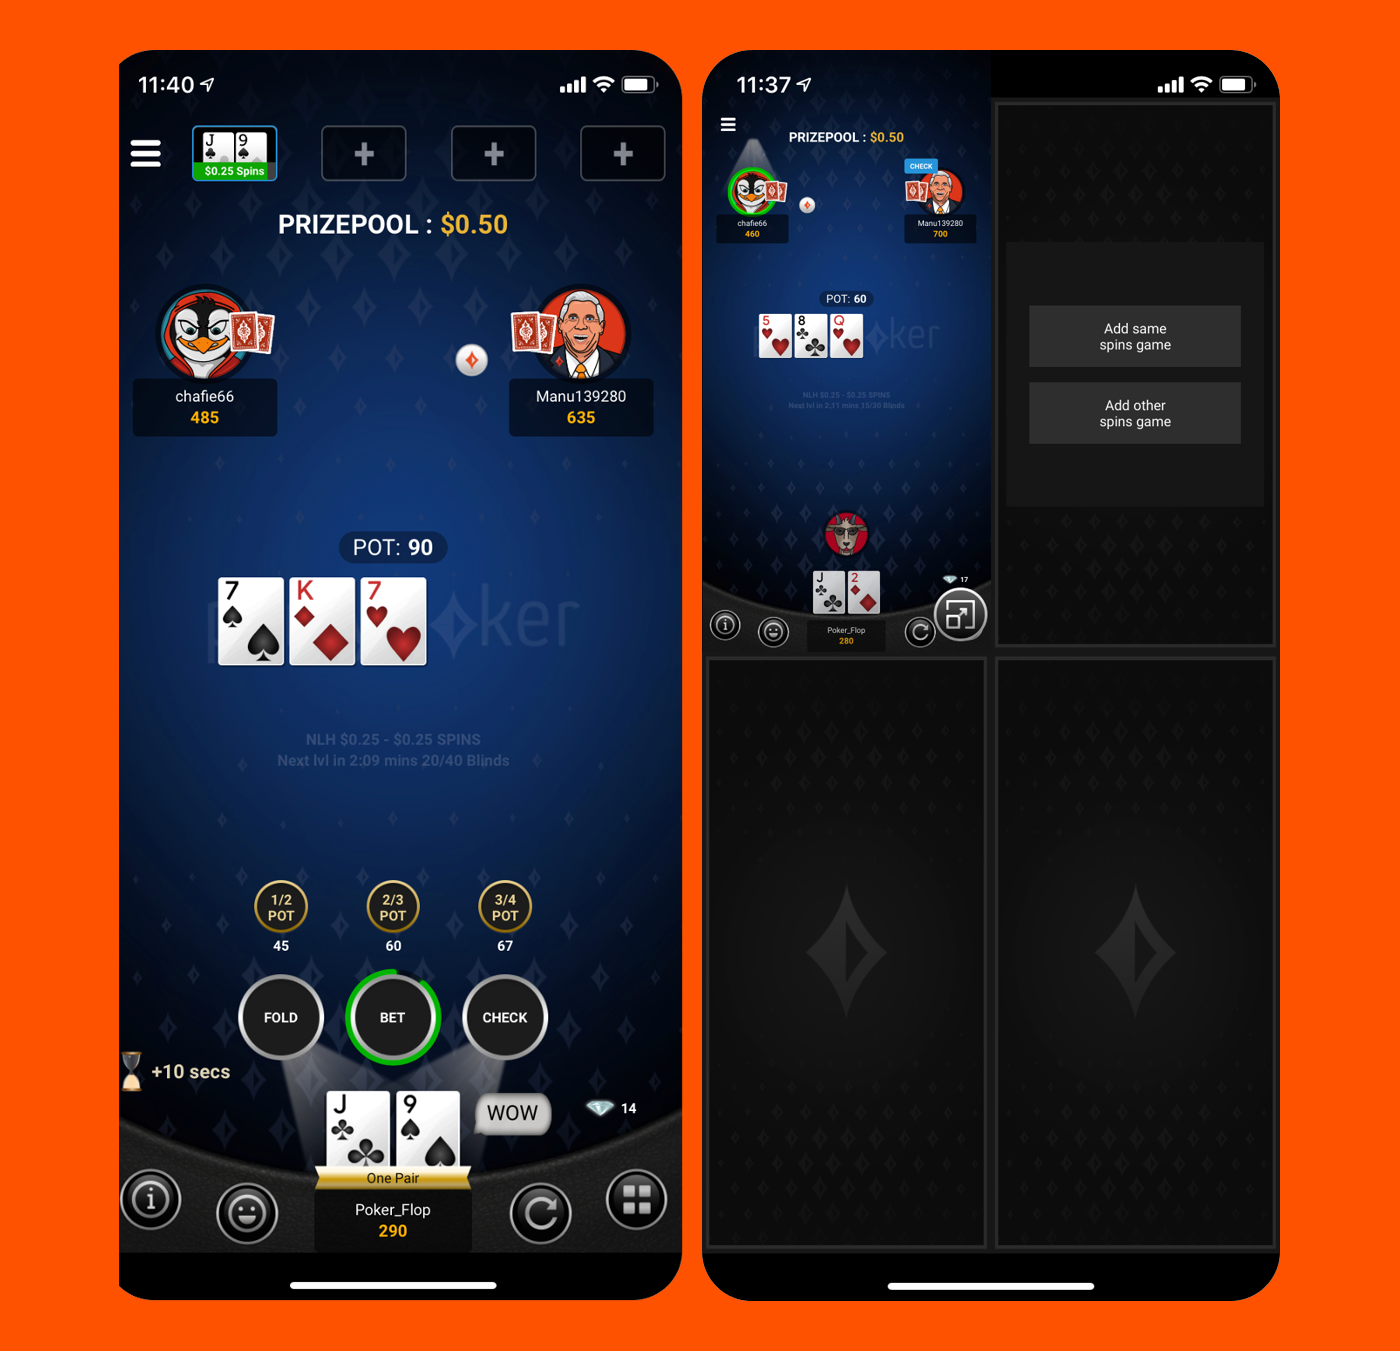 Partypoker S New Mobile App First Look The Portrait Table F5 Poker